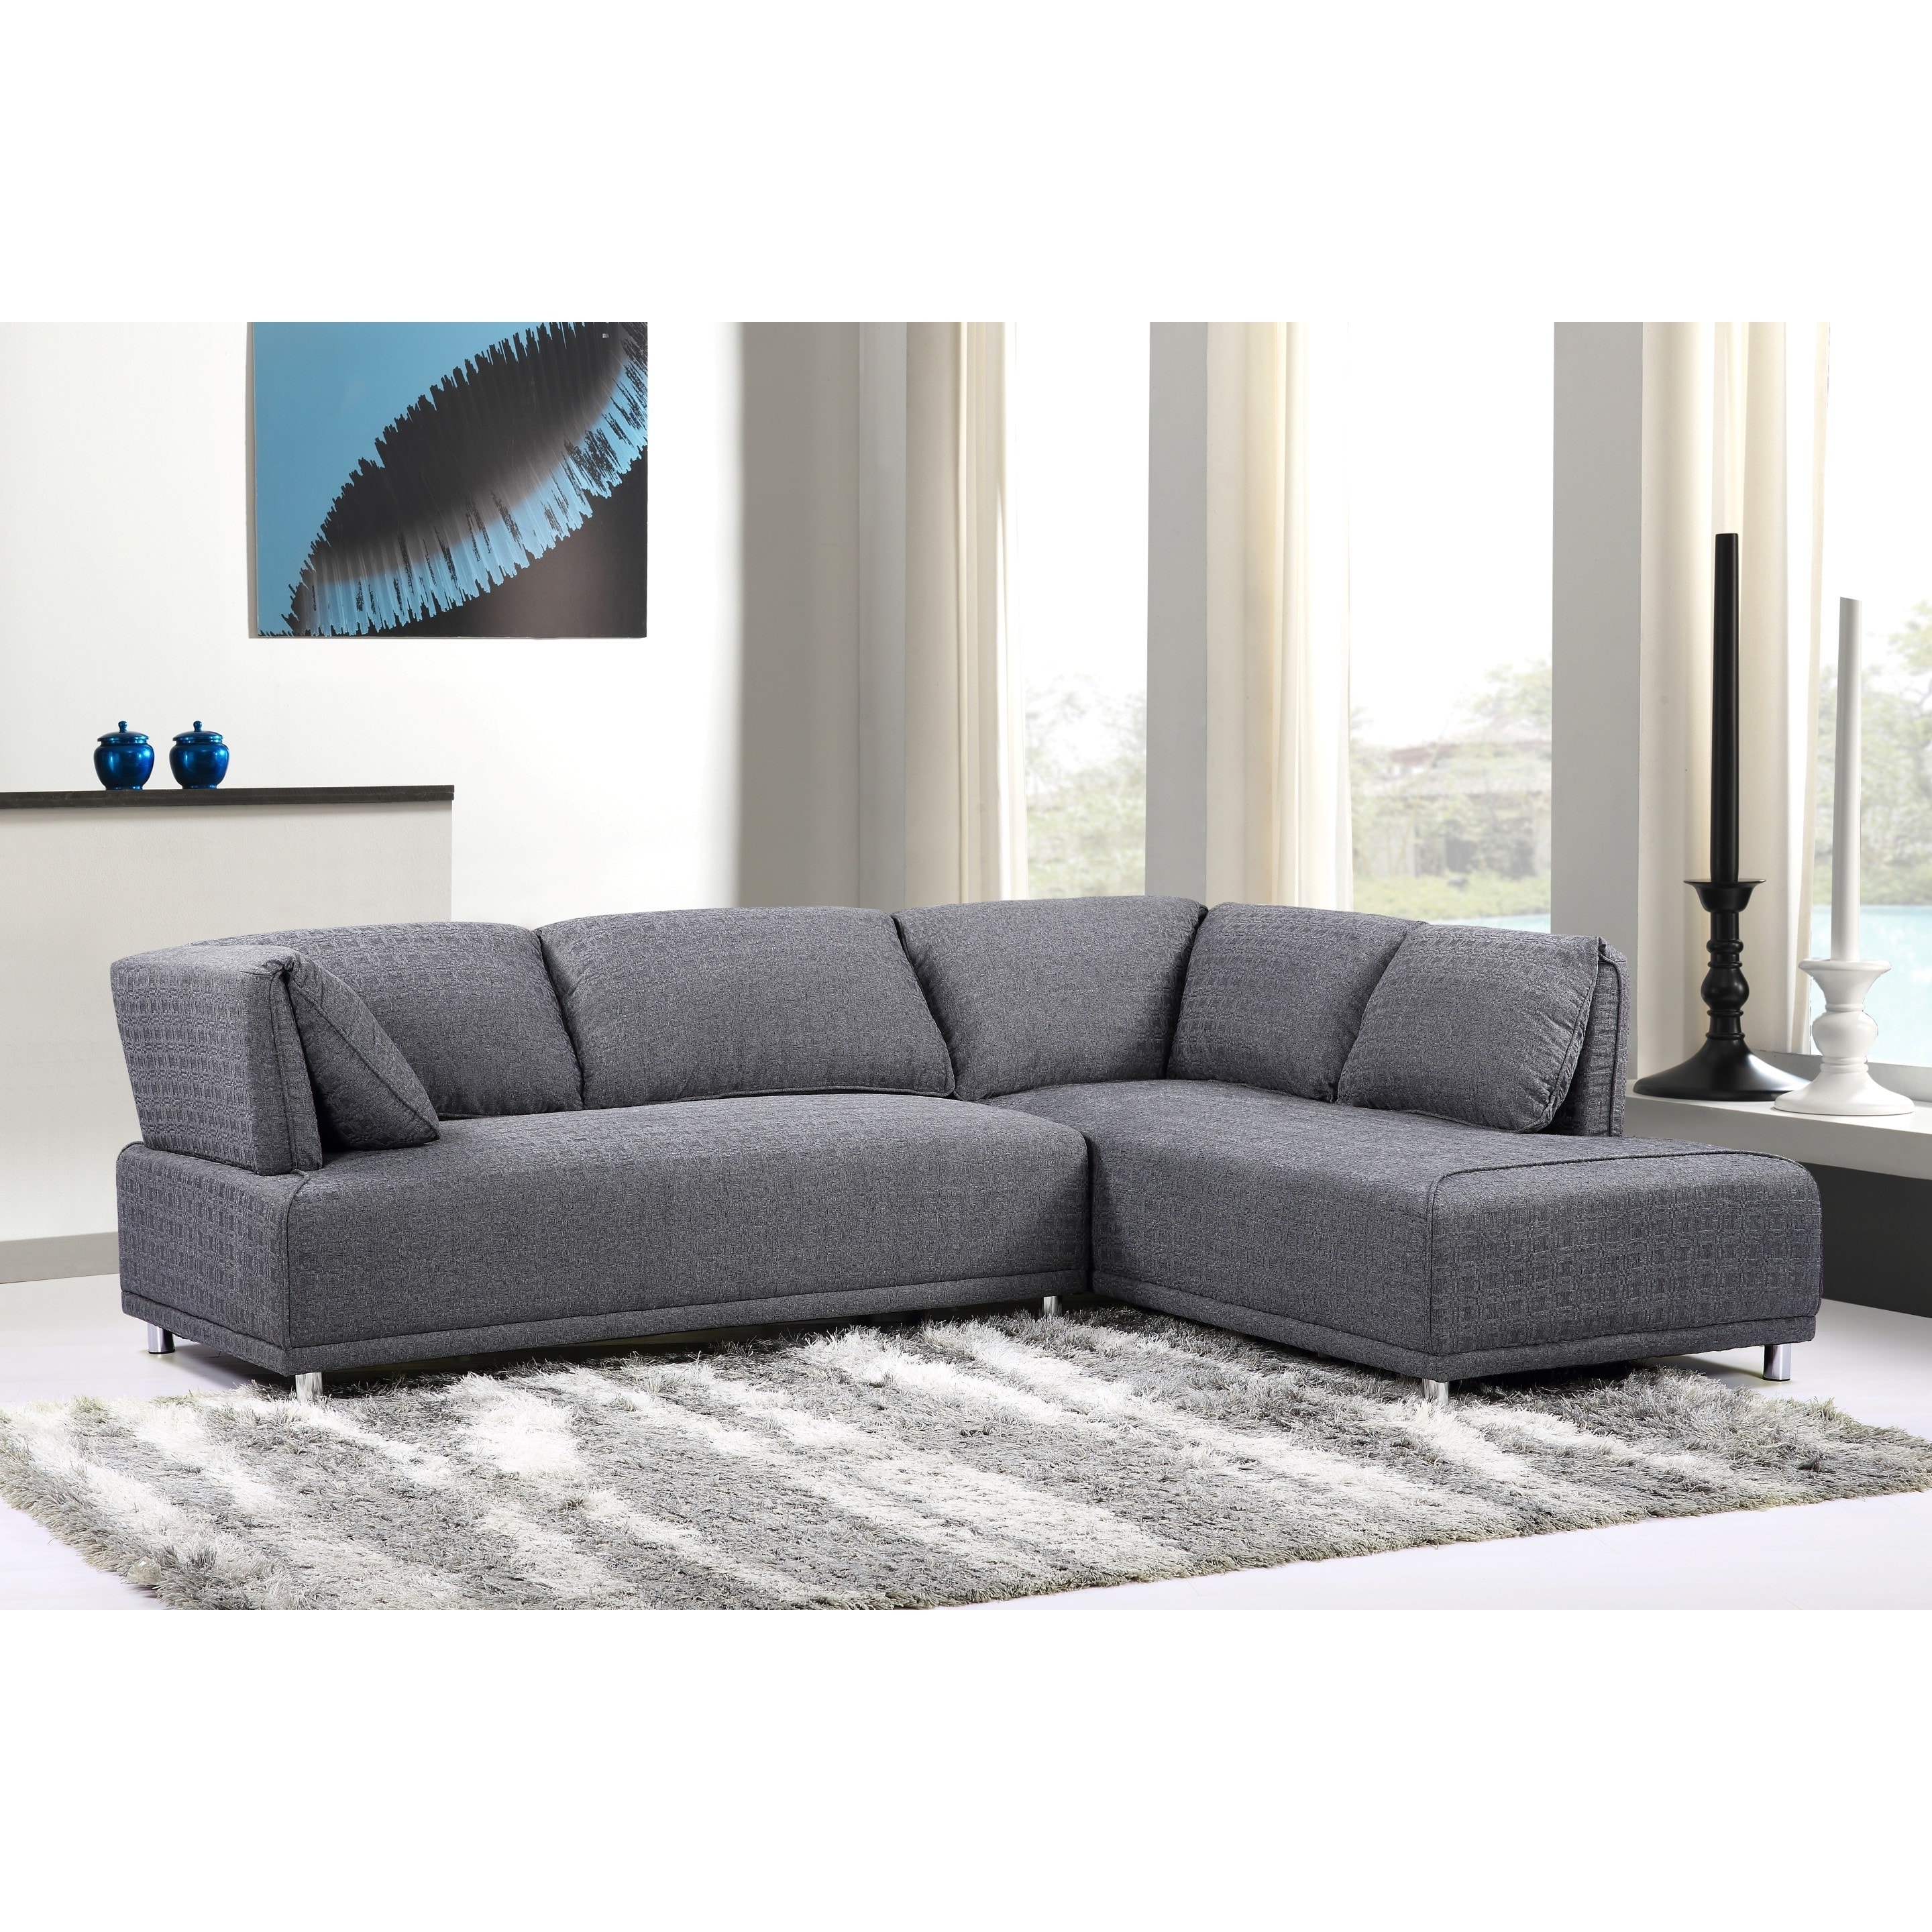 Modern Chaise Sofas Within Latest Modern Elvis Left Side Chaise Sectional Sofa With Metal Legs (View 12 of 15)